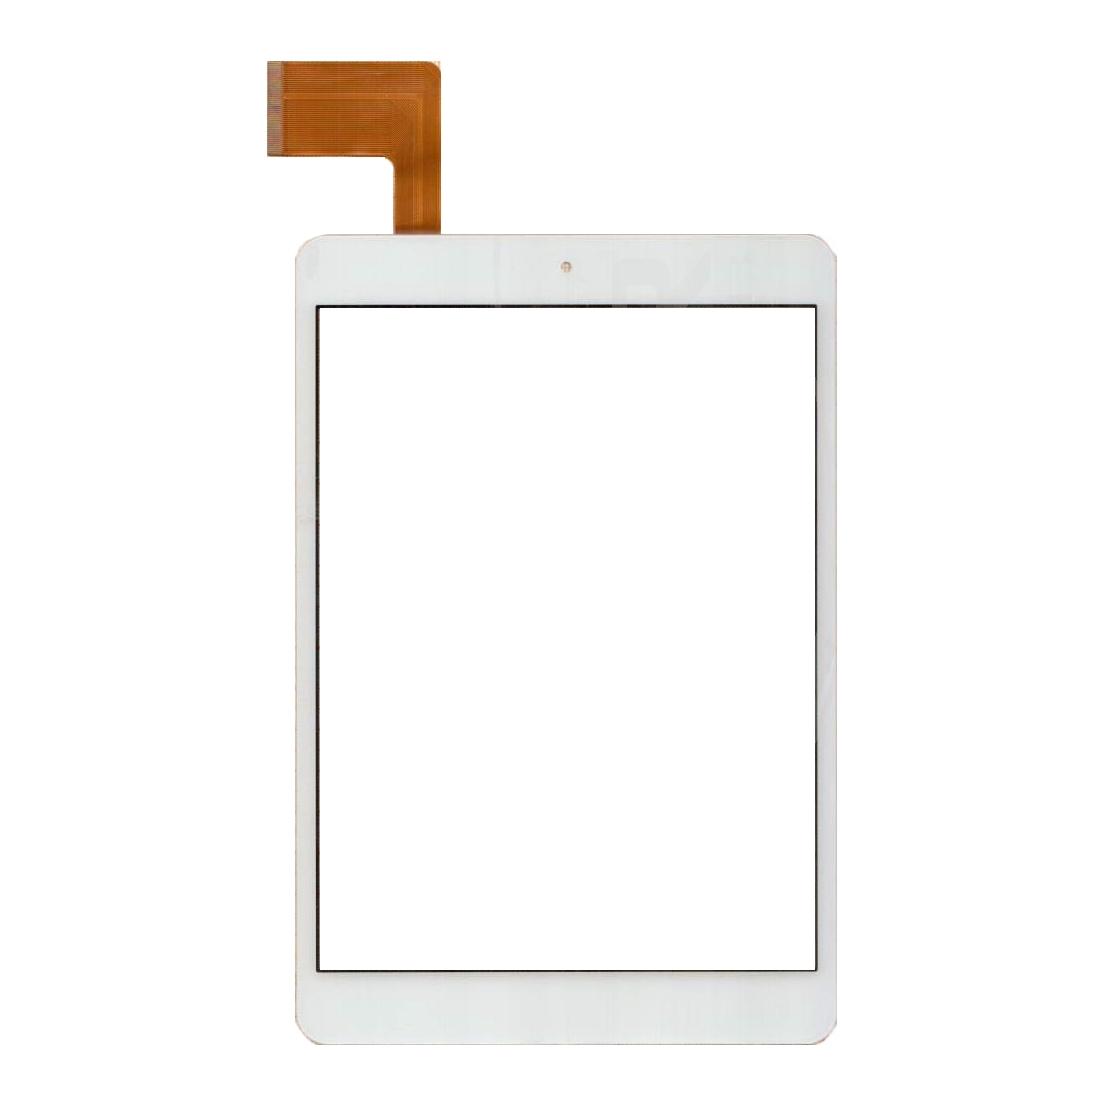 Touchscreen Digitizer Serioux S785TAB Whitestorm Quatro Alb Geam Sticla Tableta imagine powerlaptop.ro 2021